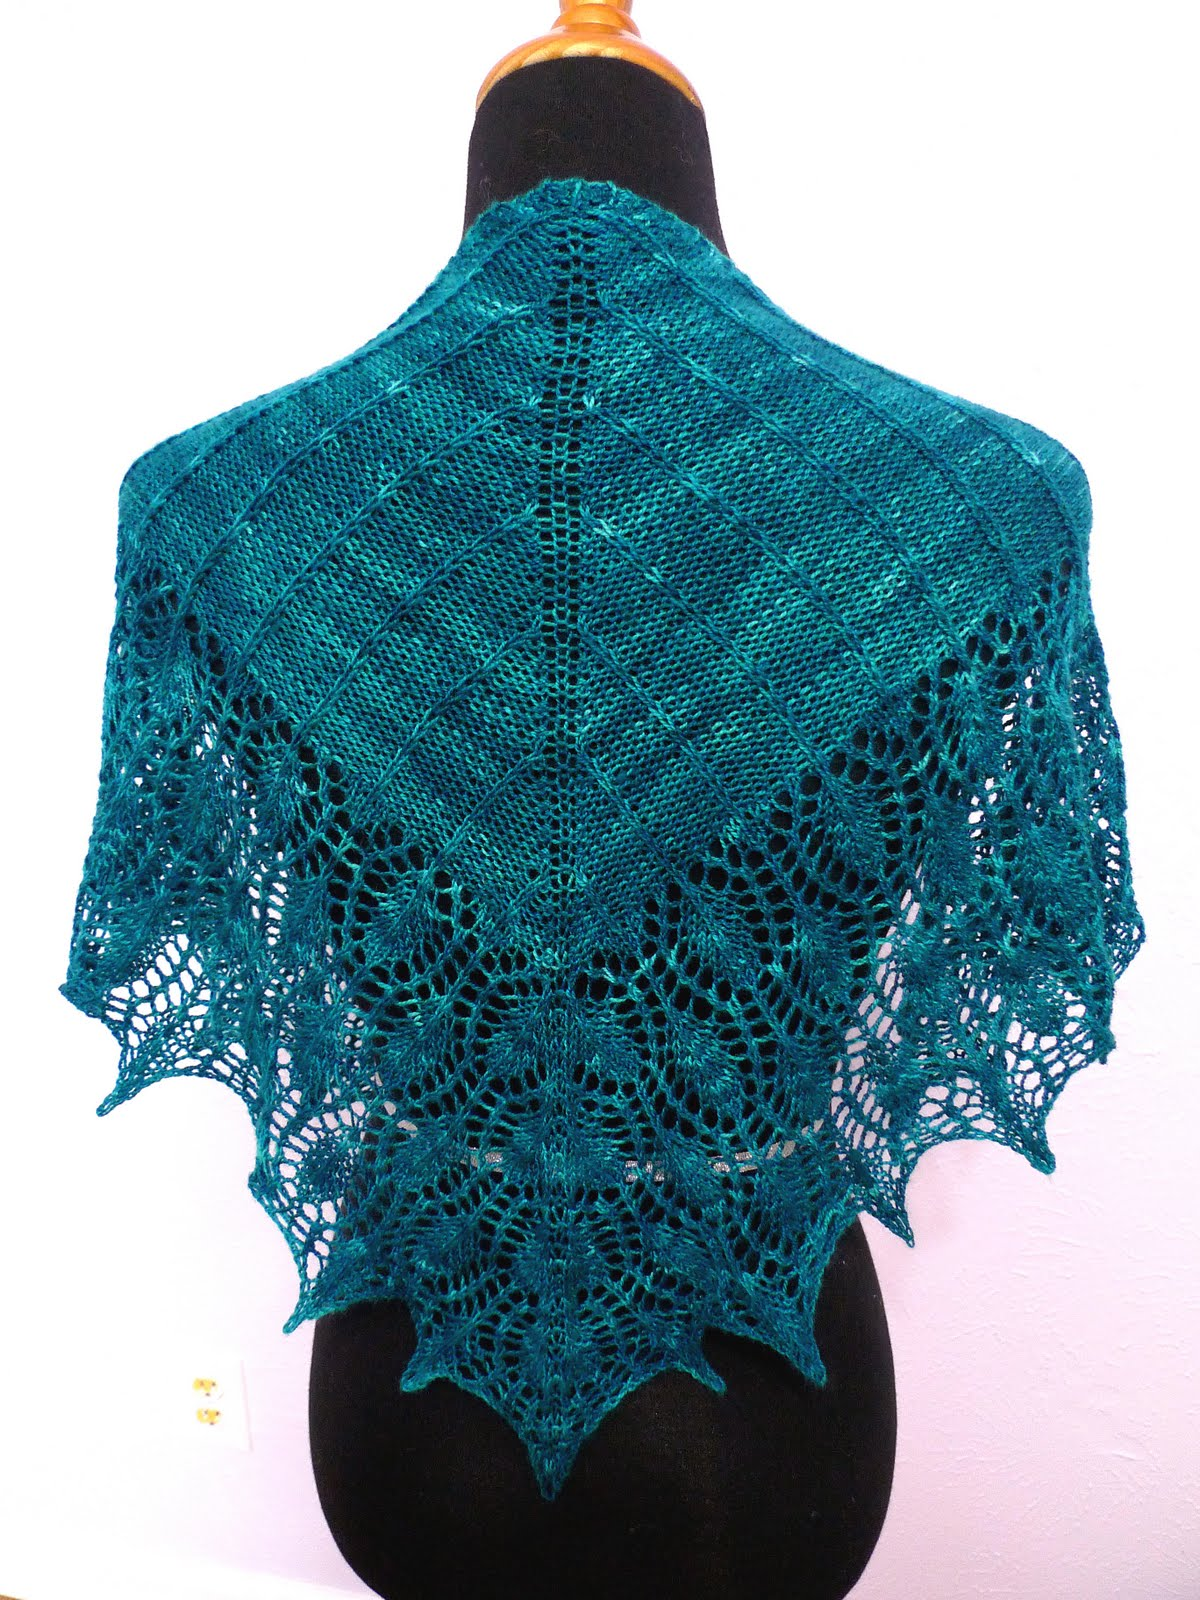 Peacock Knitting Pattern : knit your love: Peacock Shawlette n Shawl eBook